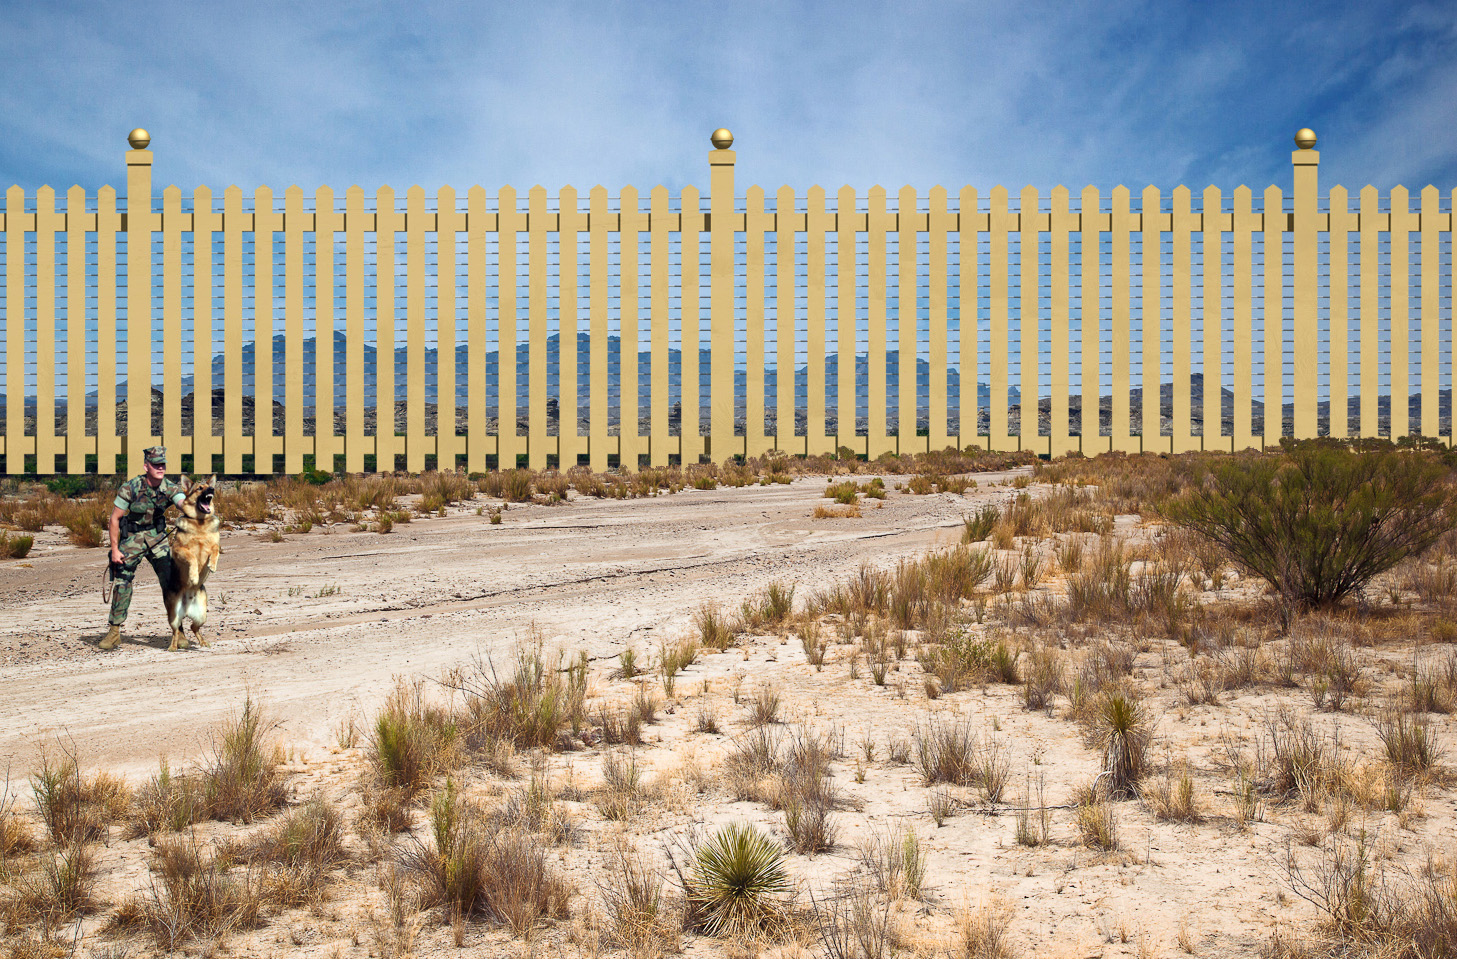 """U.S. side of border wall"""" - gold and shiny"""